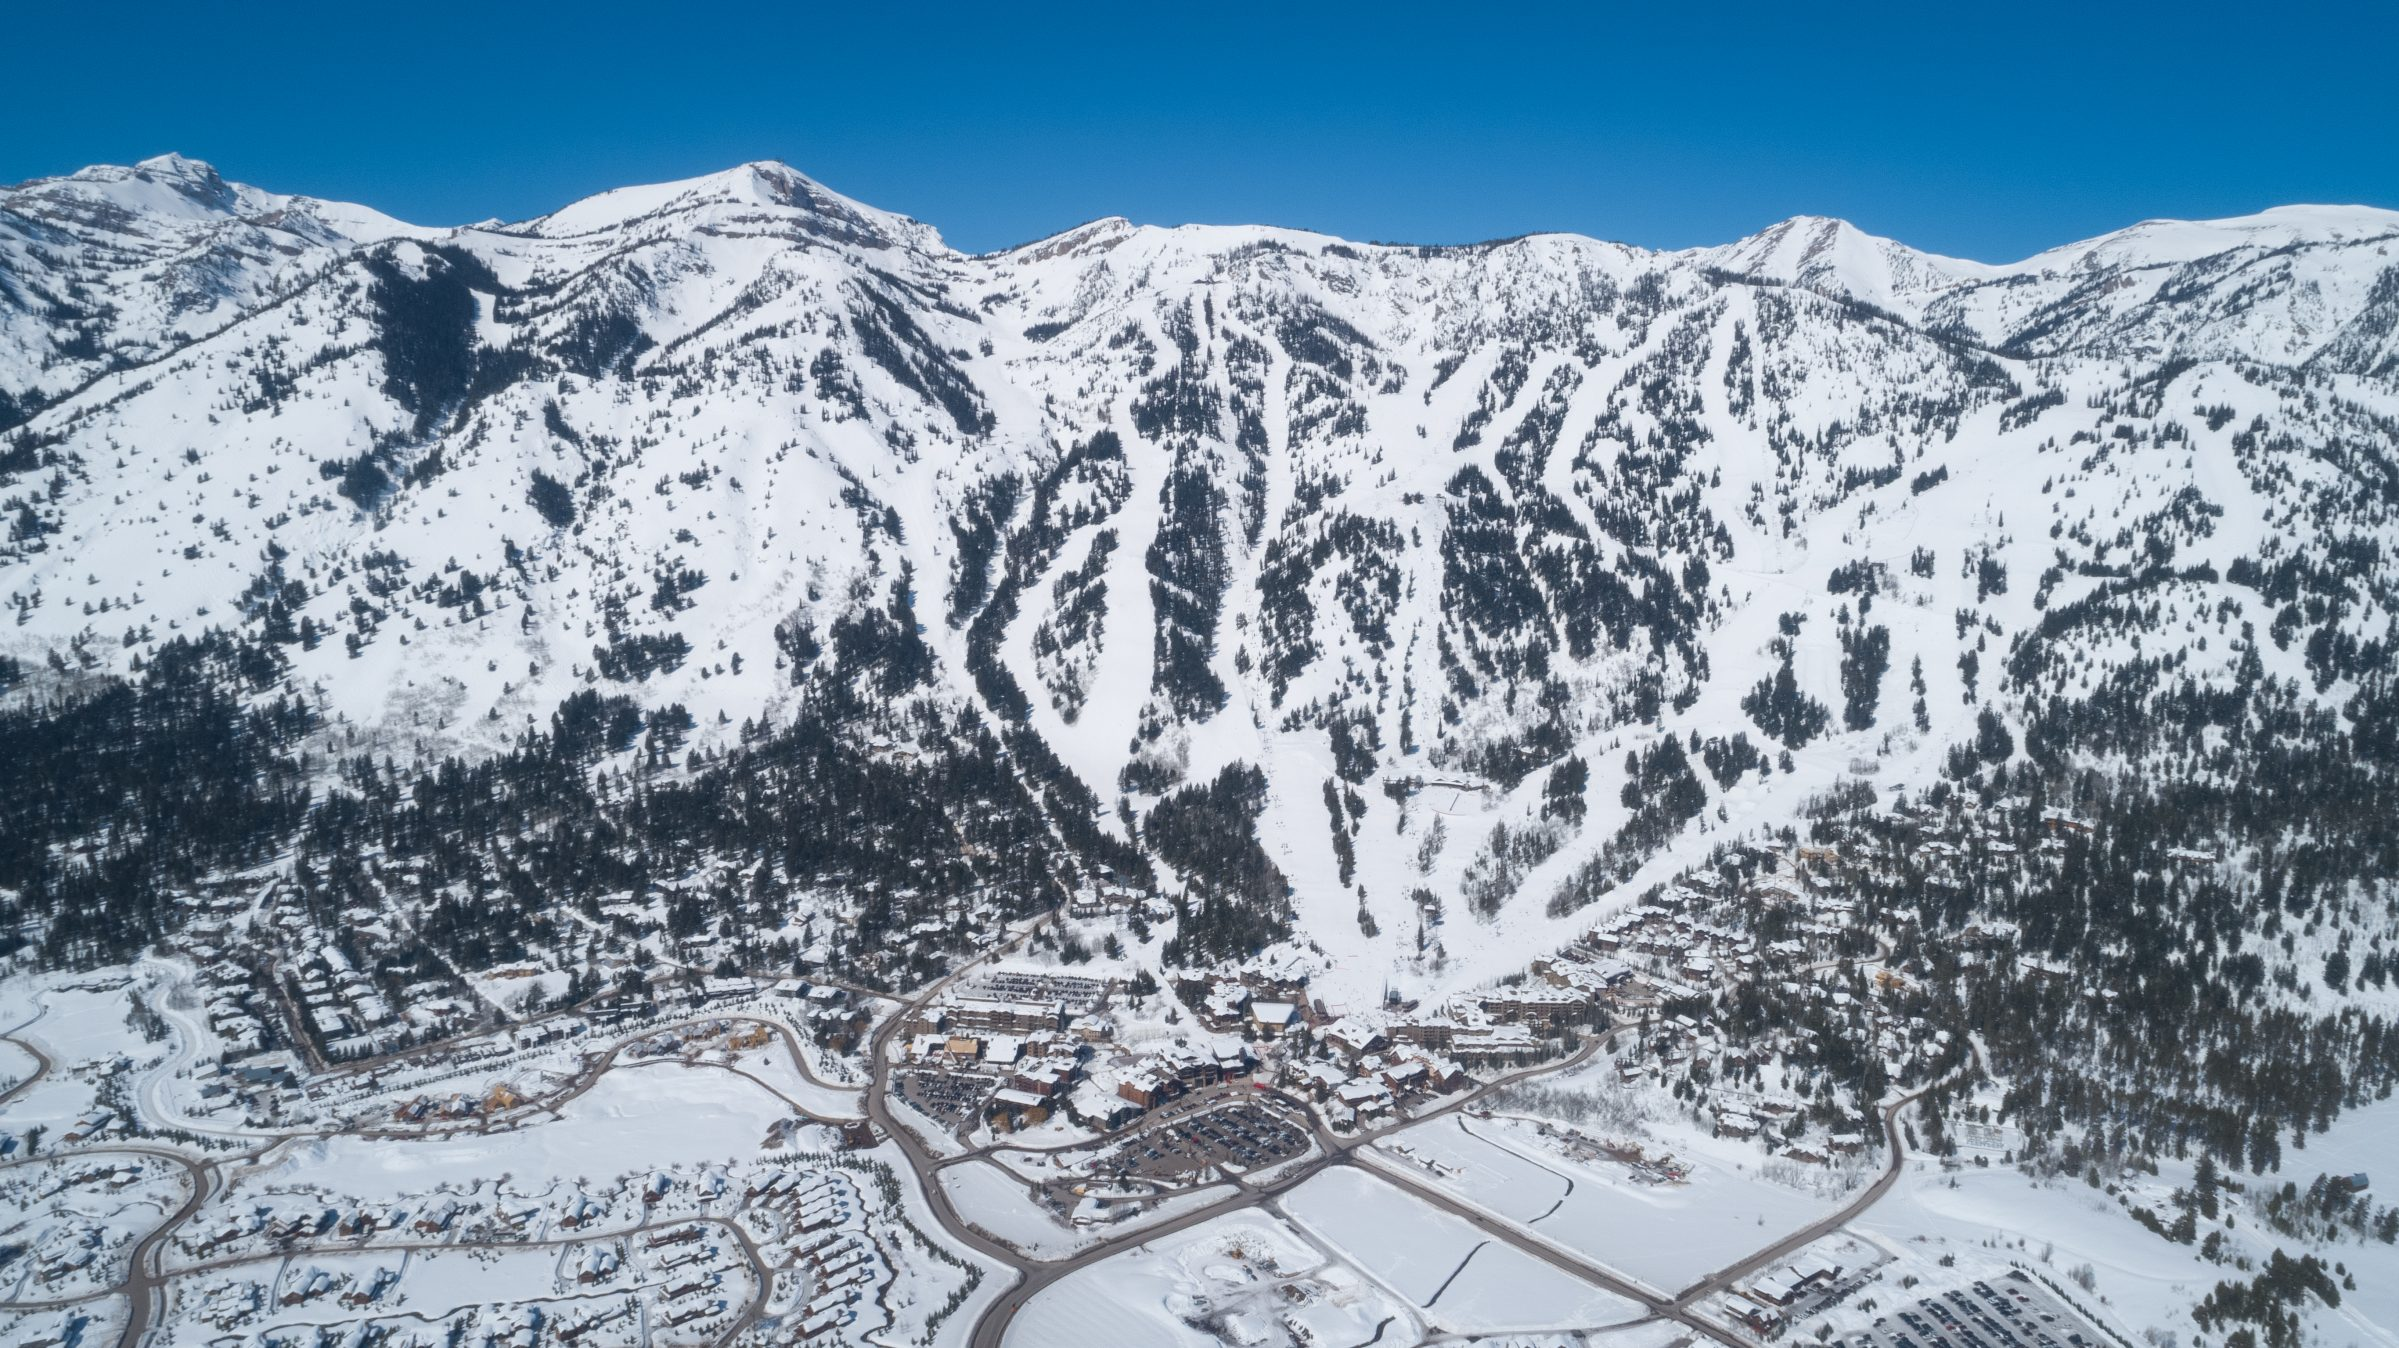 A view of the JHMR slopes and the village at the base of the mountain in Jackson, Wyoming.